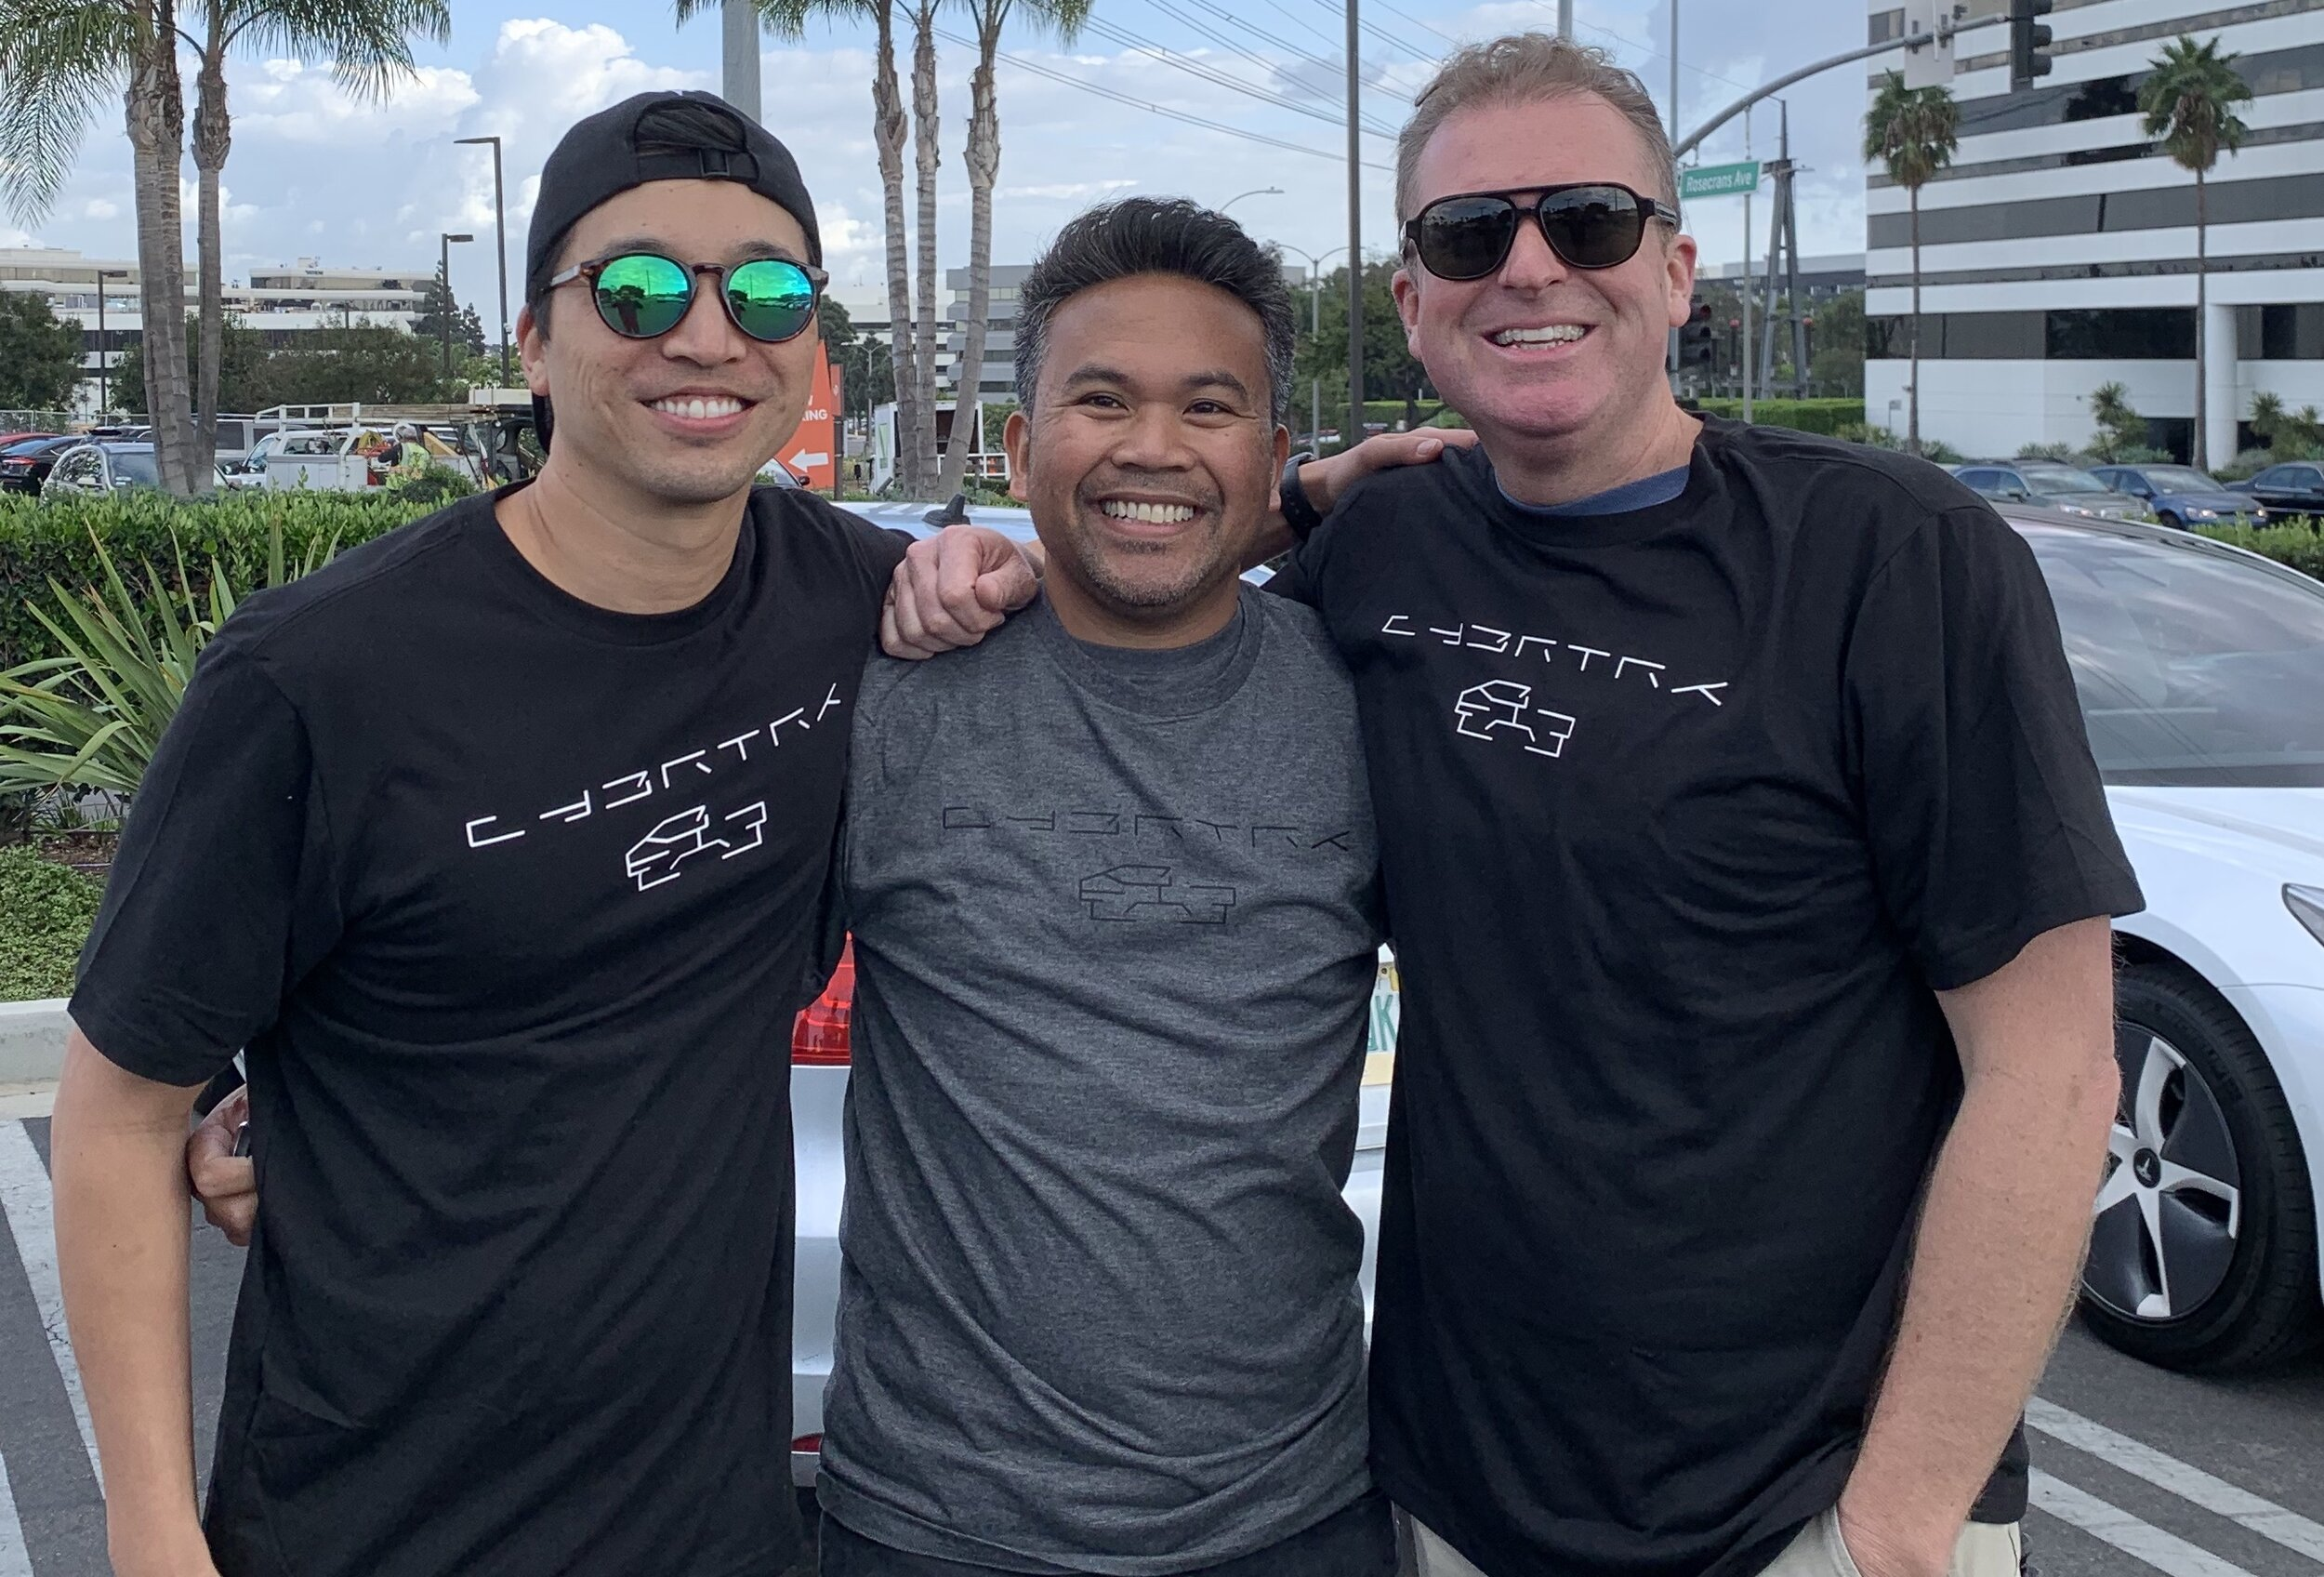 November 21st, 2019 - Tesla Cybertruck unveiling in Hawthorne California. (Pictured L to R): Al, Wilmer, Chad